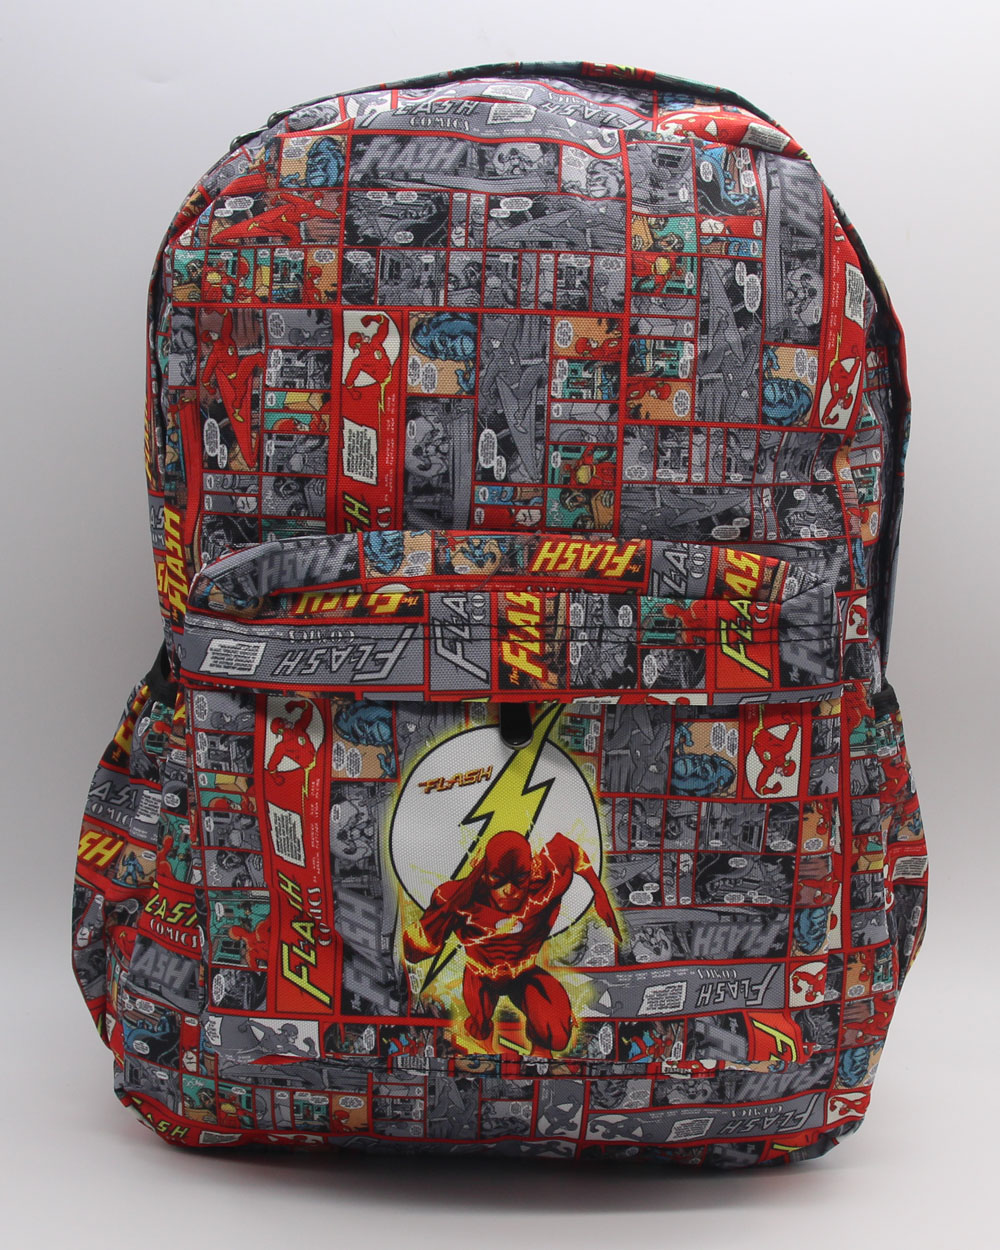 Lot Style The Flash School Bag Color Printing Laptop Backpack Comics Superhore Shoulder Travel Bags Work Leisure Fashion BagLot Style The Flash School Bag Color Printing Laptop Backpack Comics Superhore Shoulder Travel Bags Work Leisure Fashion Bag